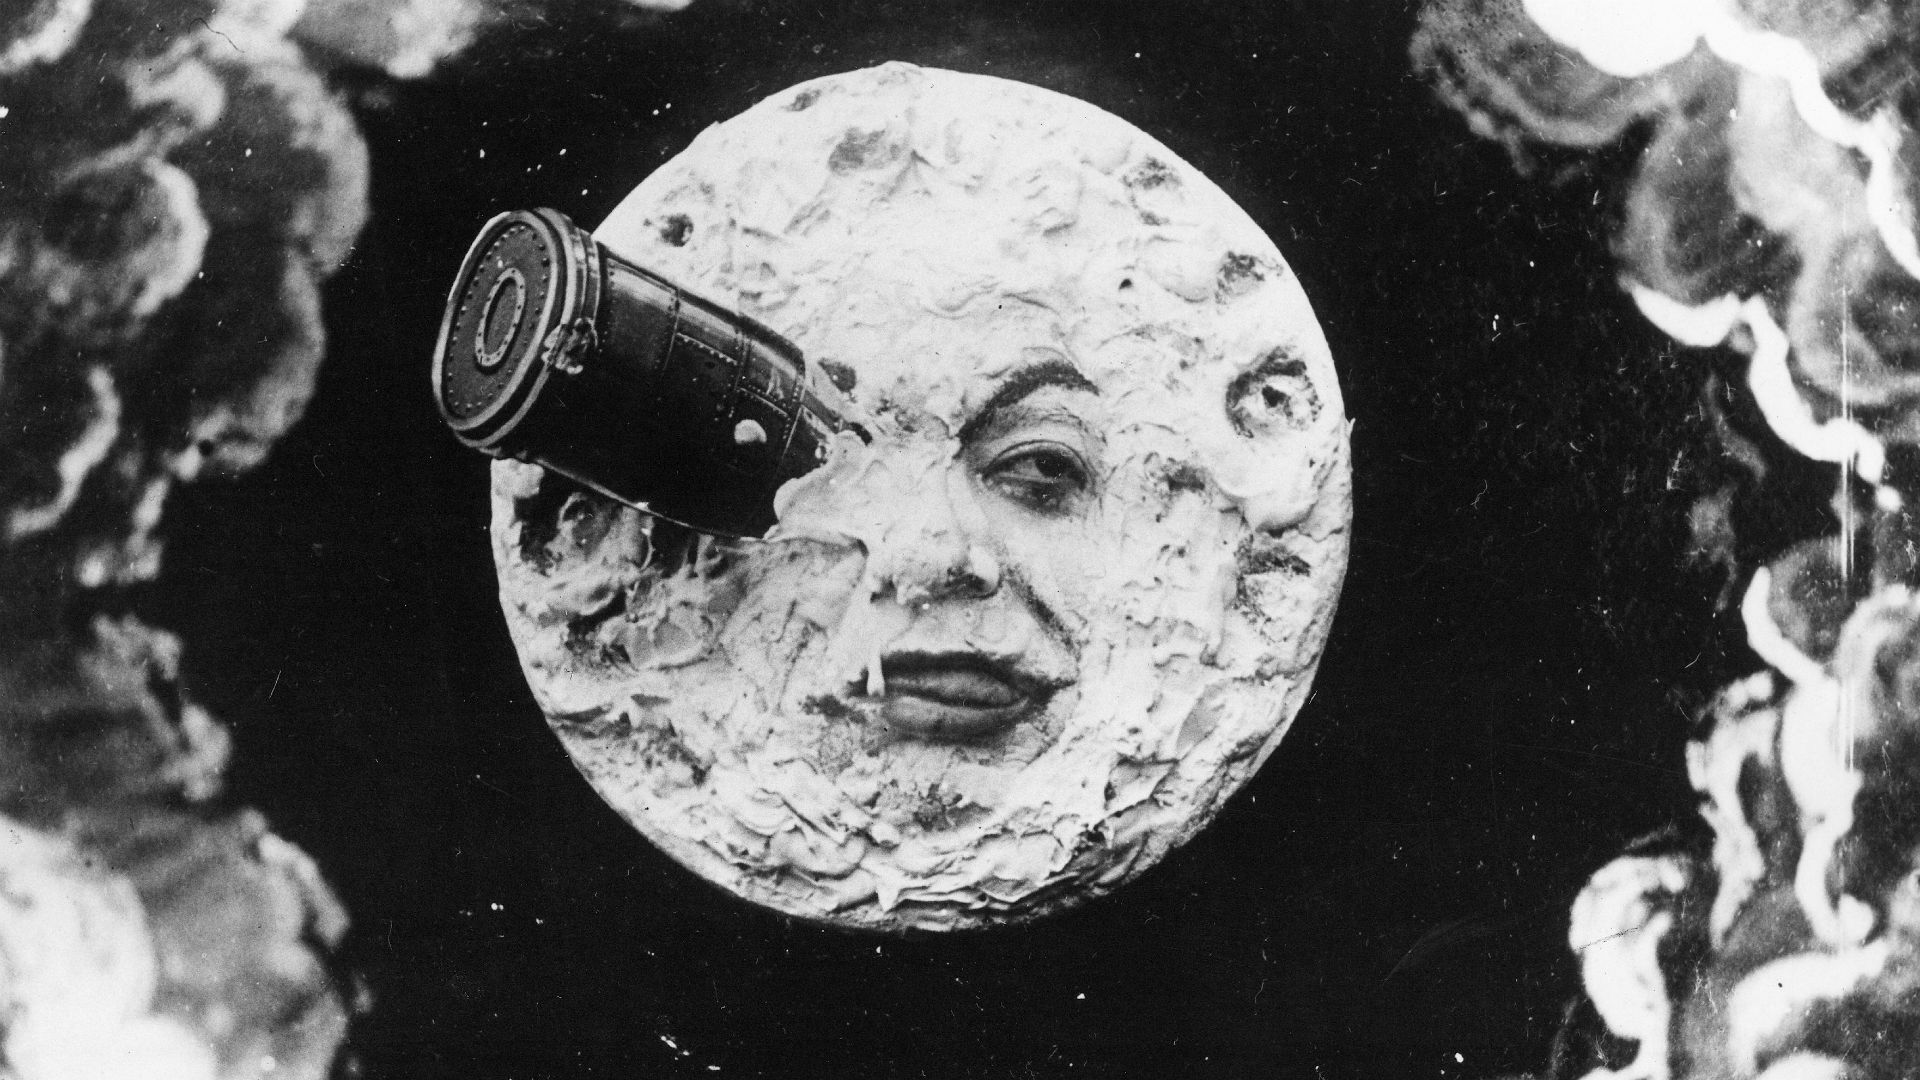 A scene from Georges Méliès's 1902 film A Trip to the Moon